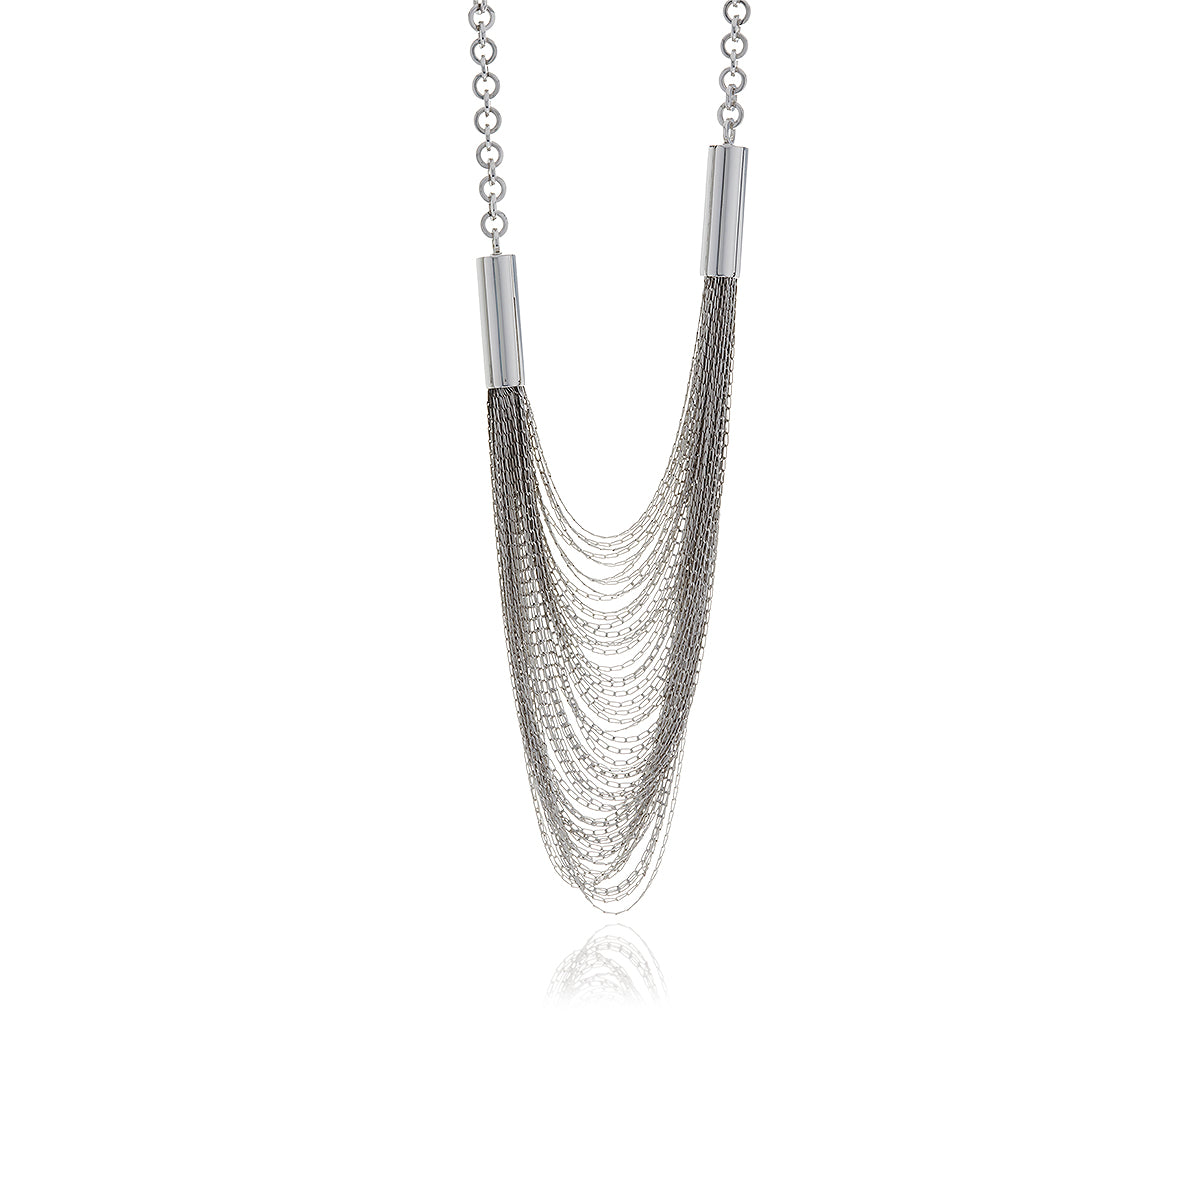 Releve Silver Long Chain Necklace - Georgina Jewelry